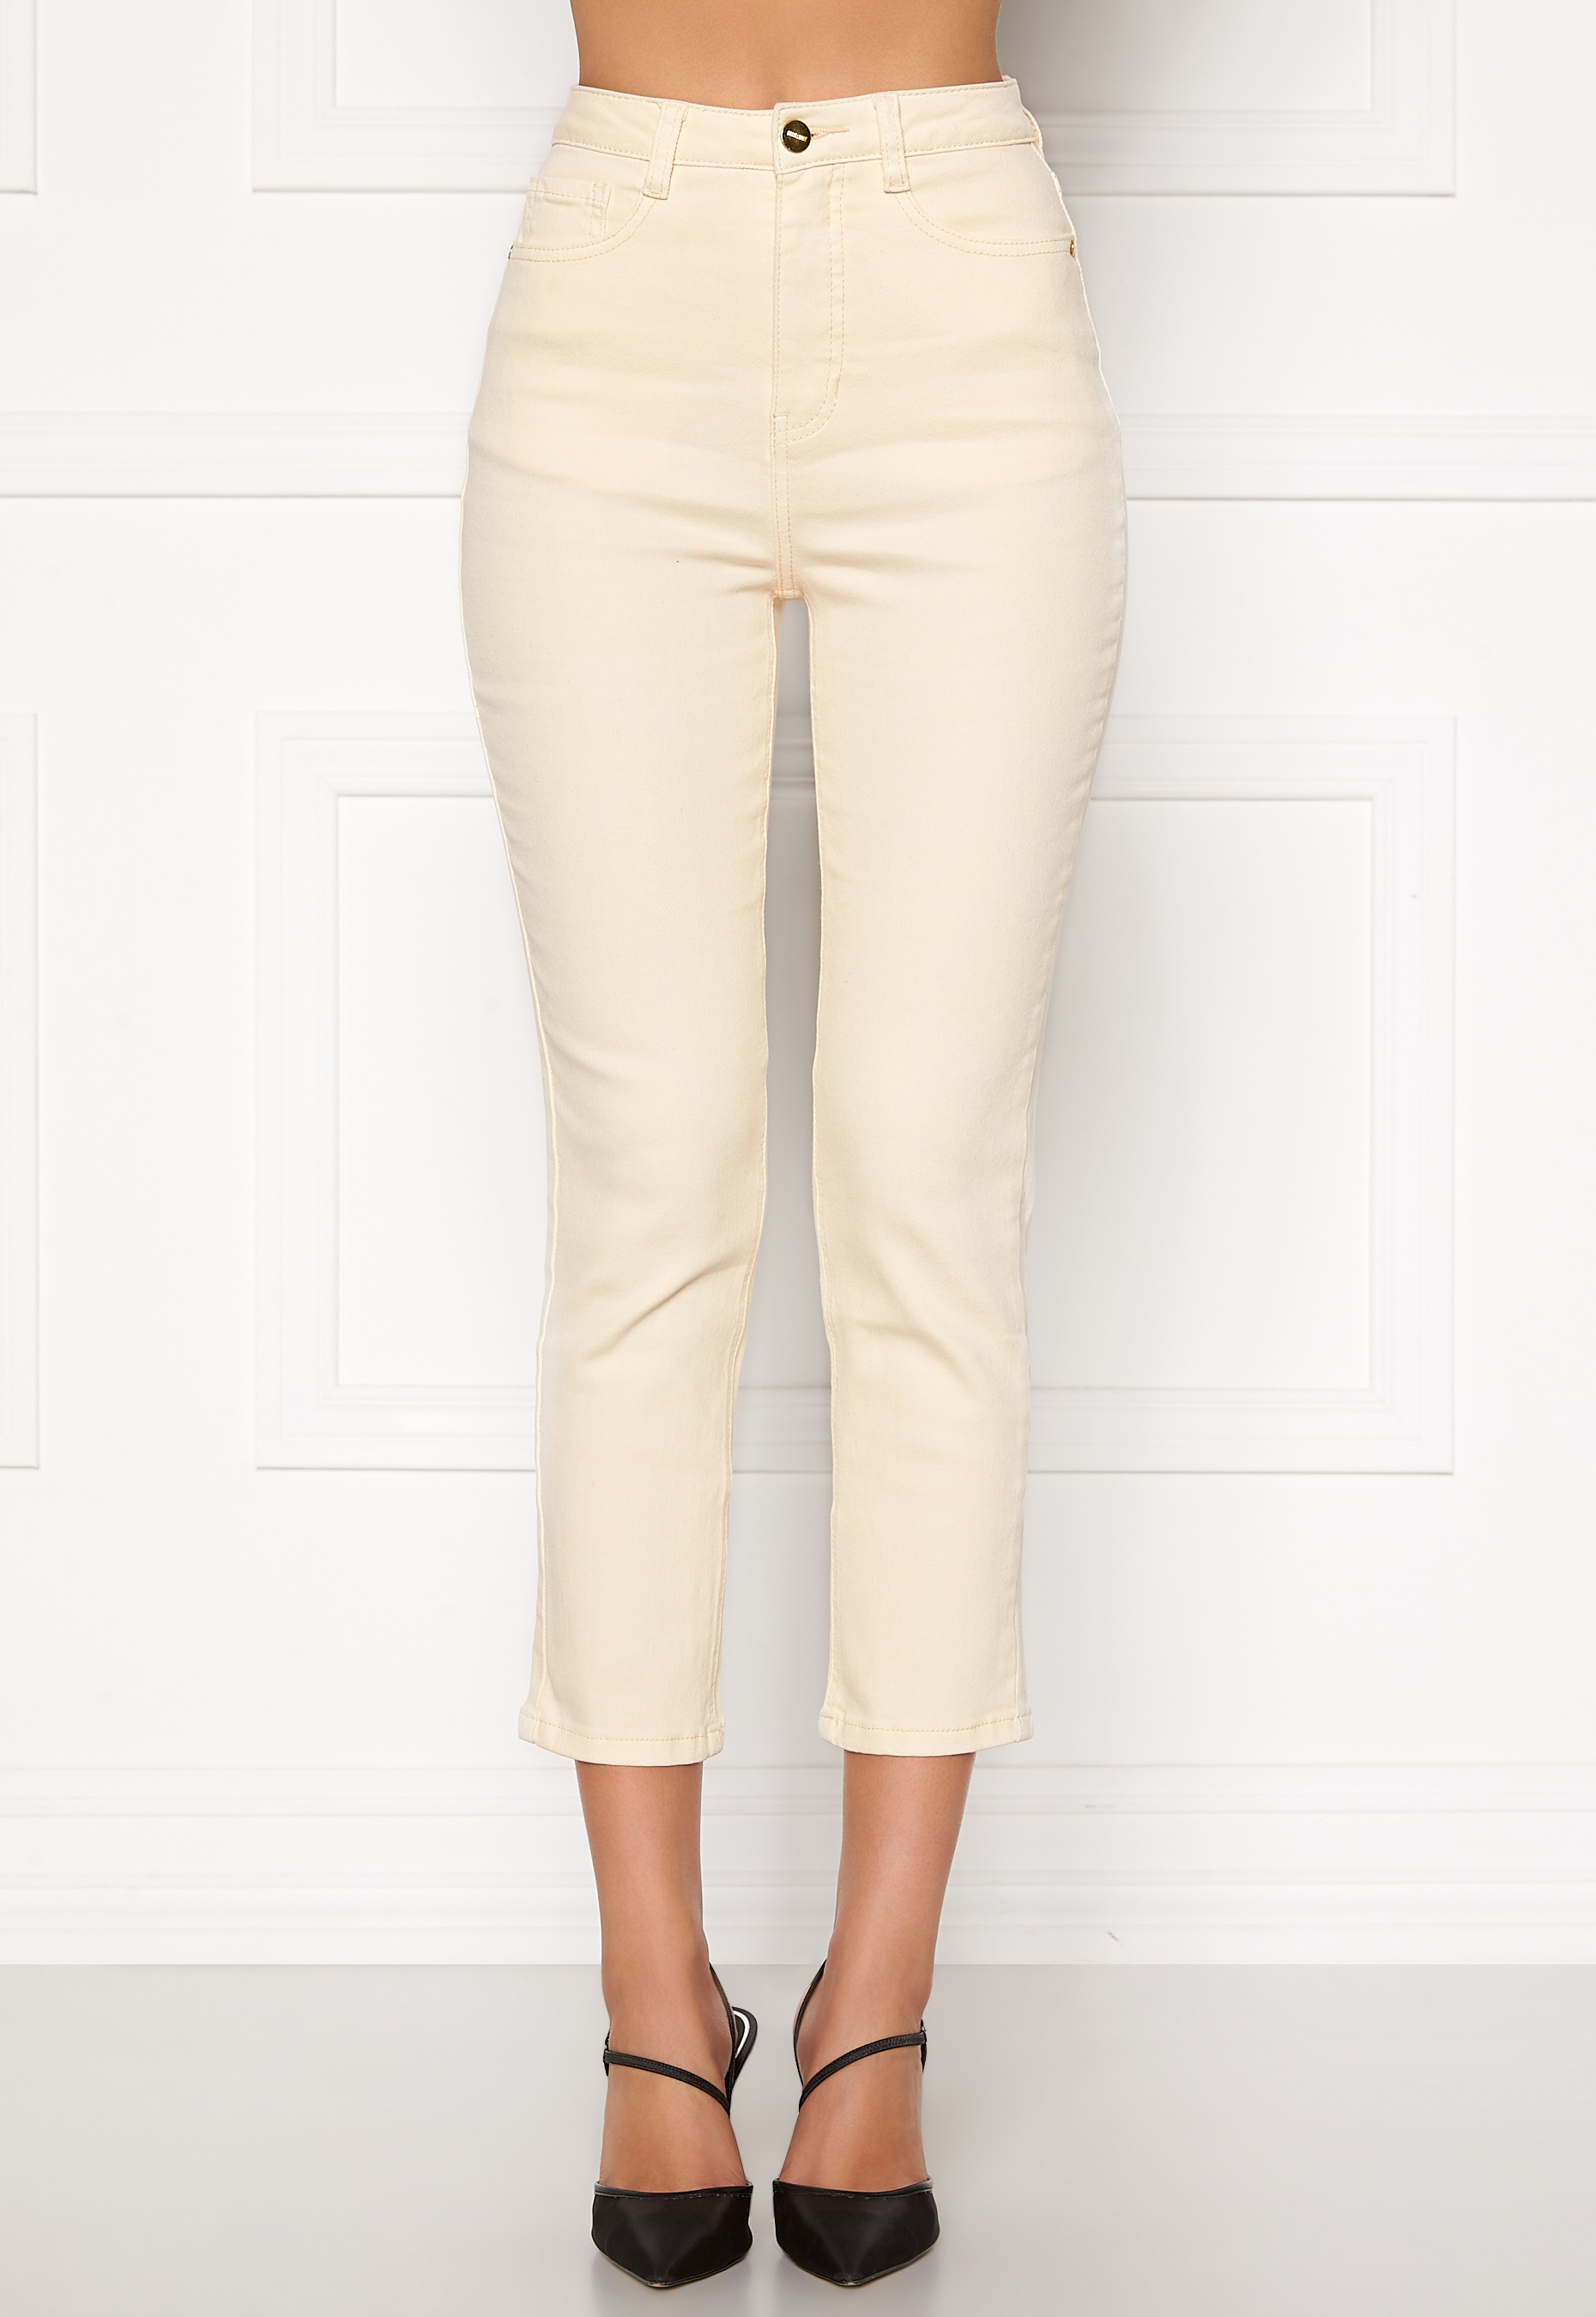 bubbleroom-katy-high-waist-semi-stretch-jeans_10